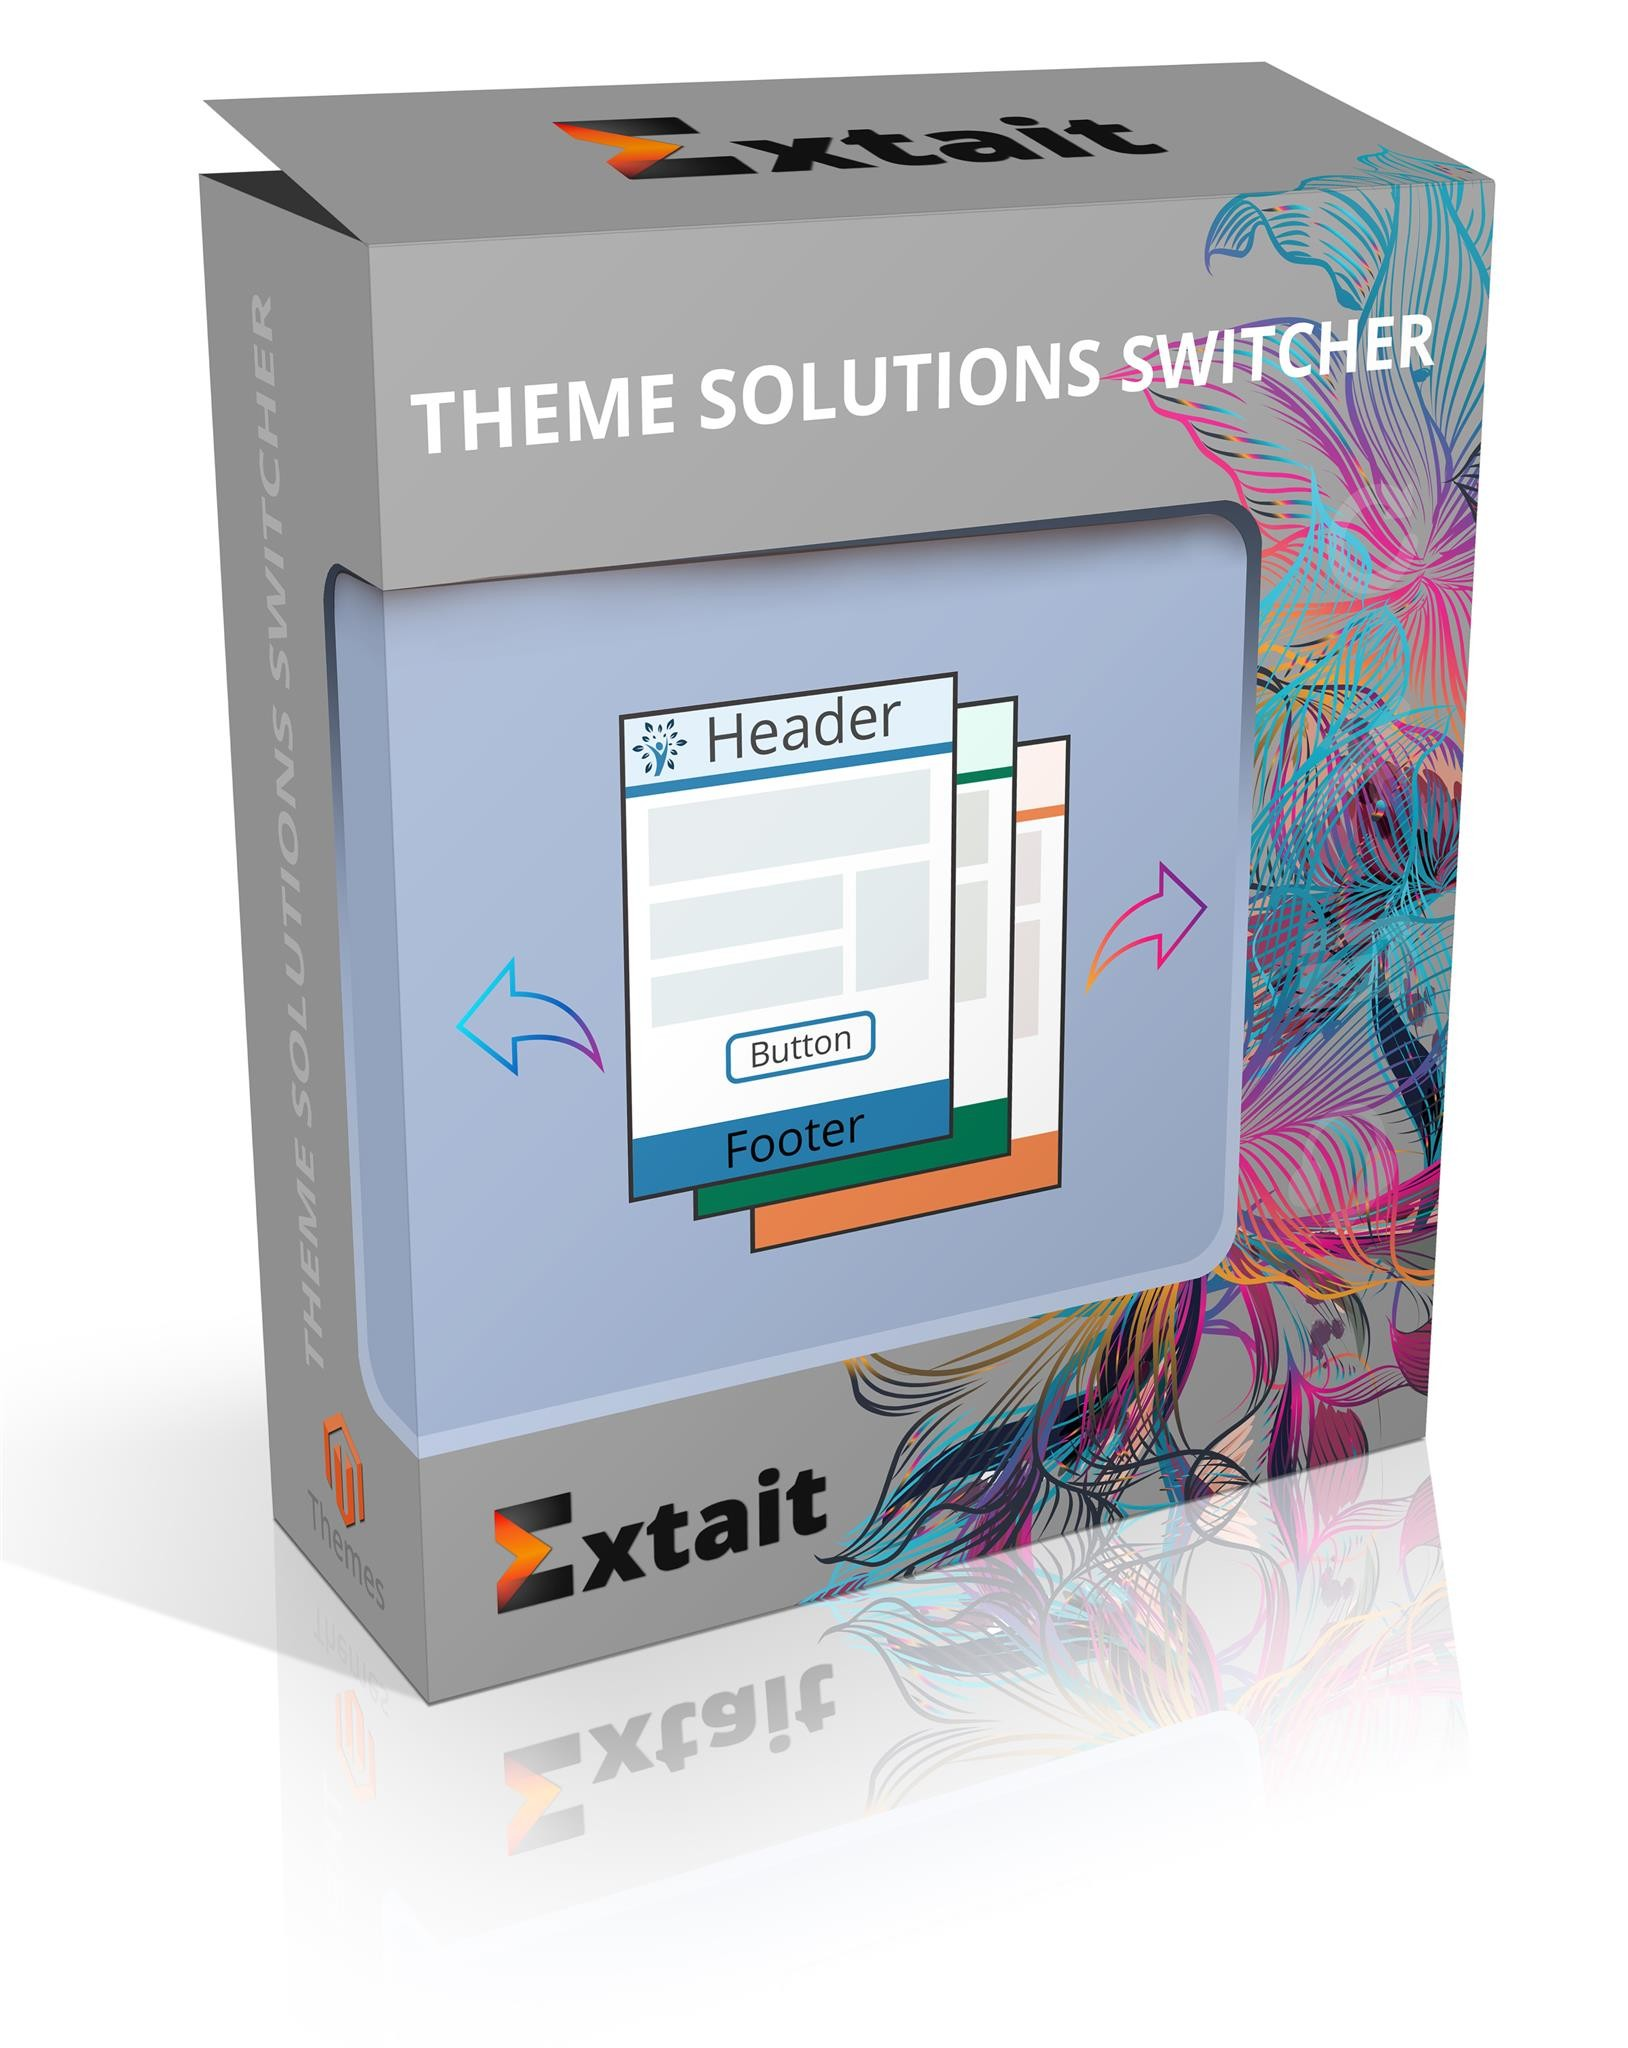 Themes Solutions Switcher